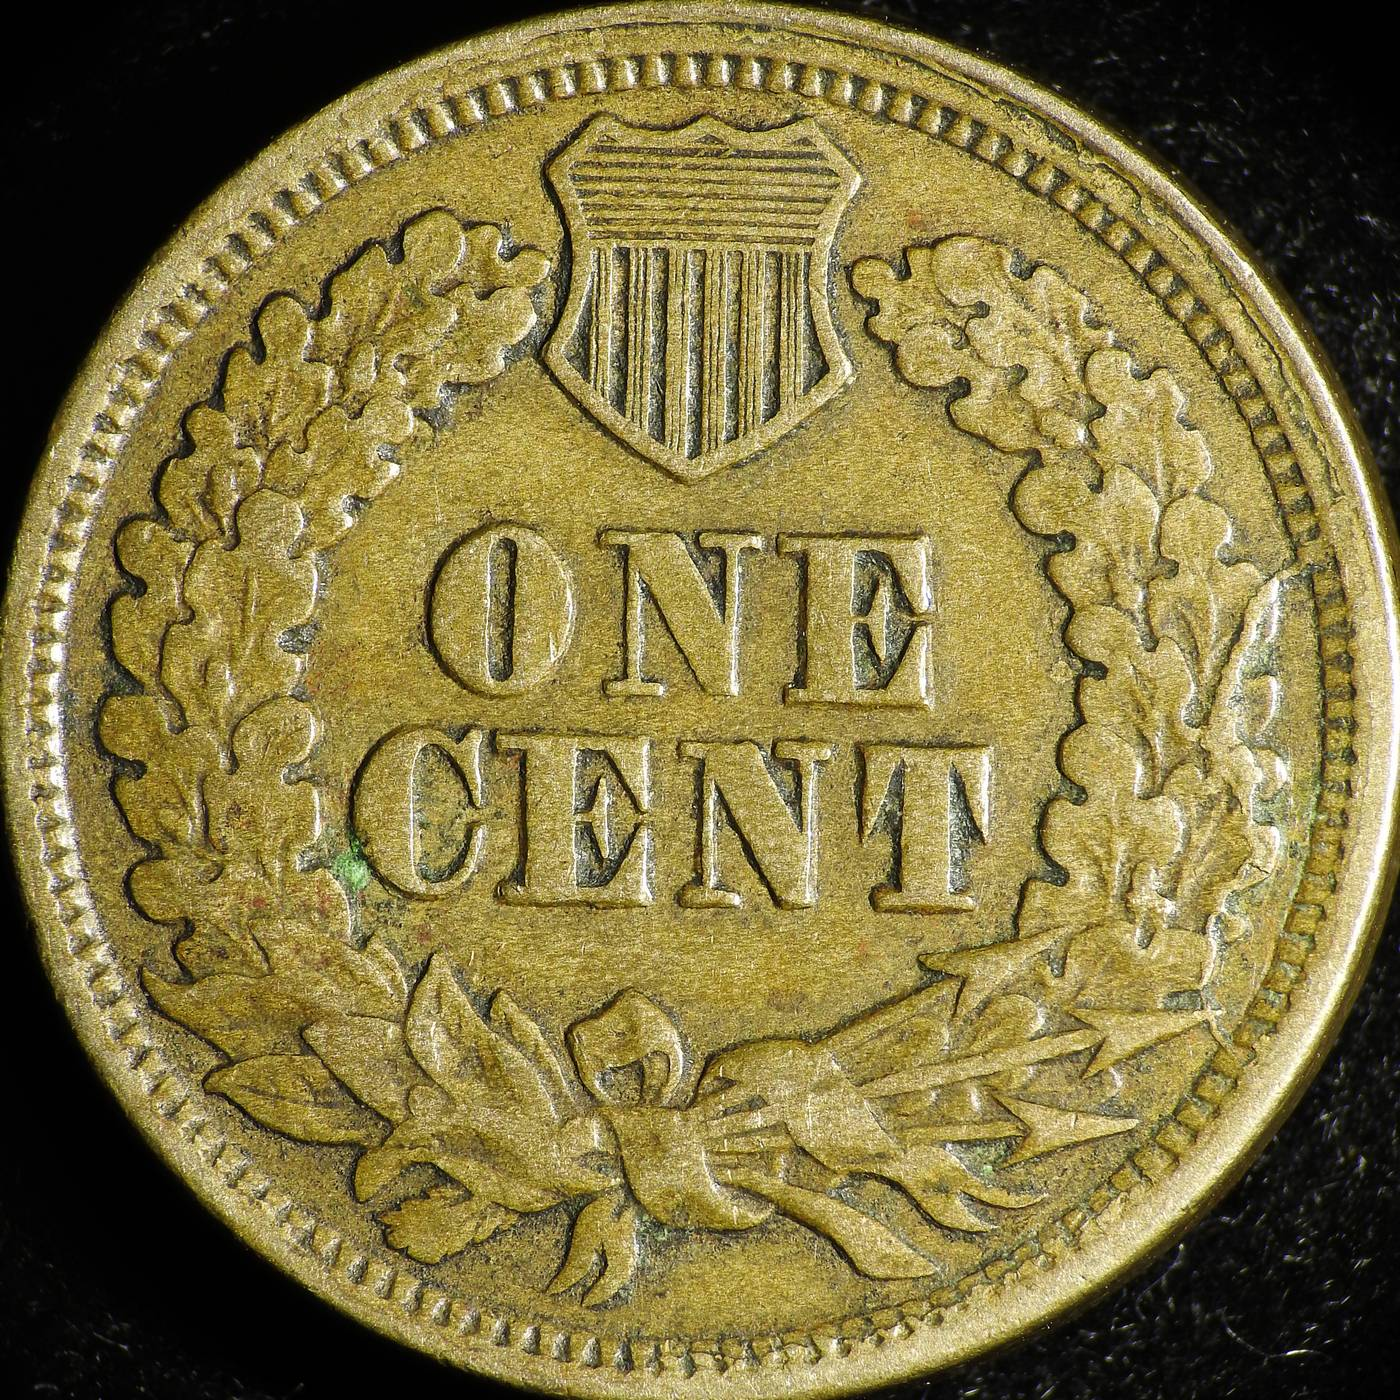 1863 CUD-032 - Indian Head Penny